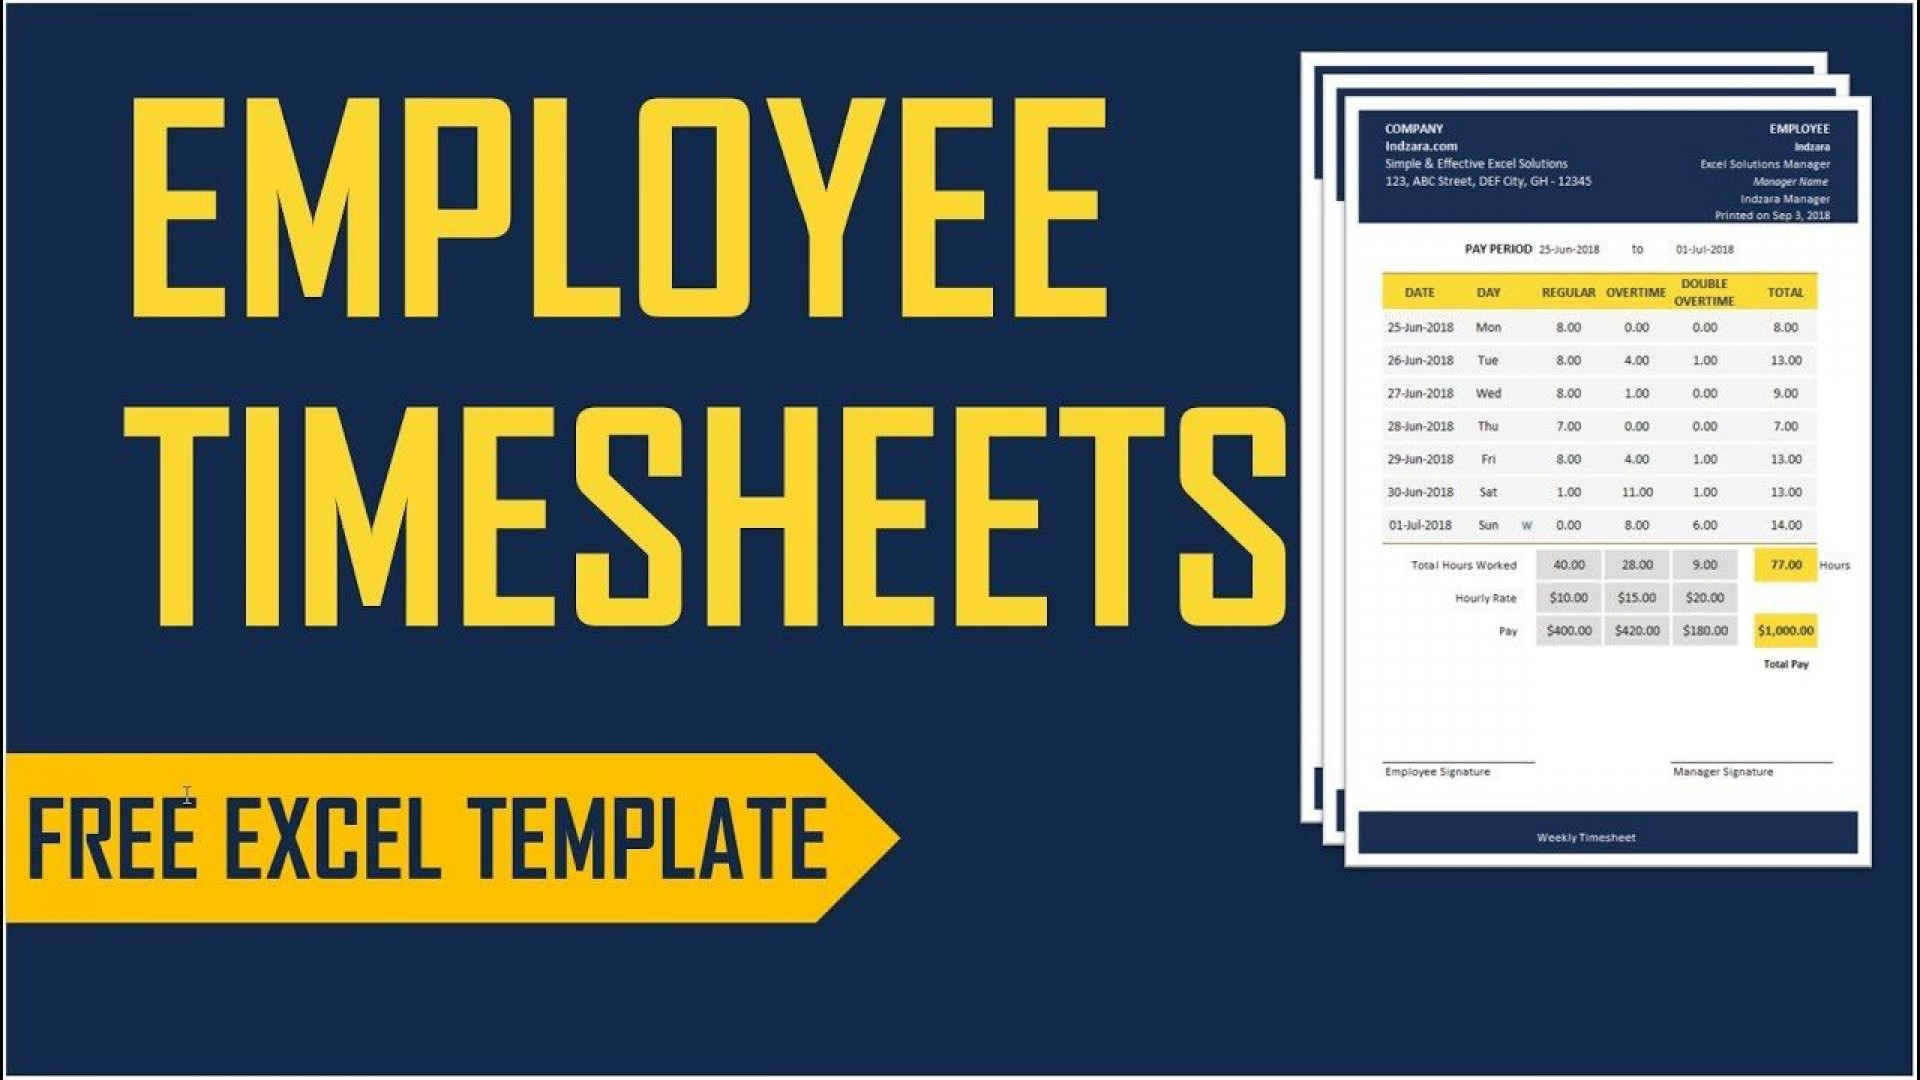 001 Magnificent Multiple Employee Timesheet Template High Definition  Schedule Job Excel1920